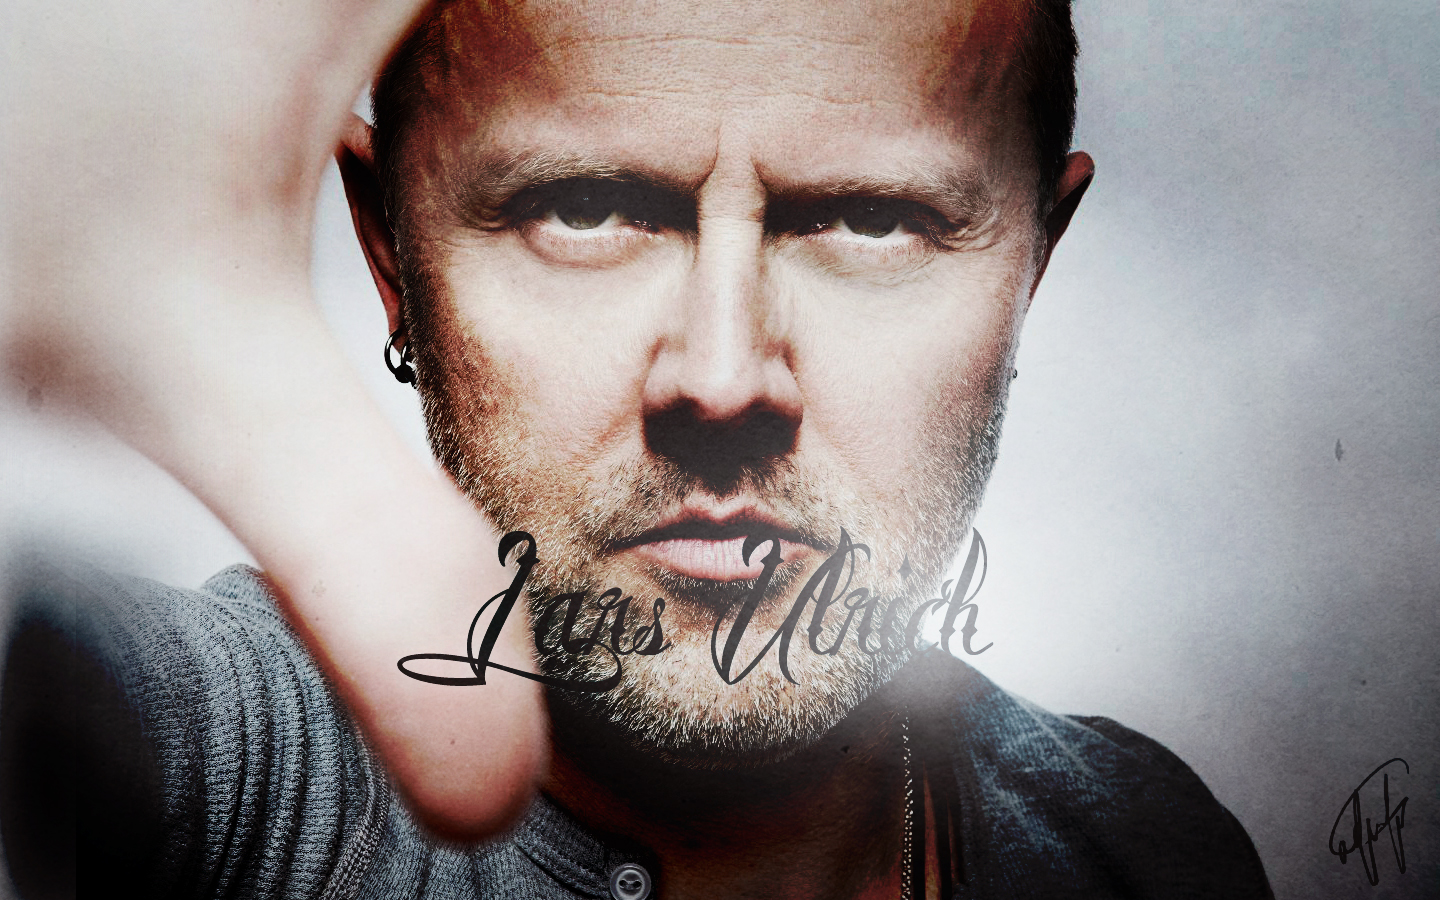 larsulrich The 10 Most Obnoxious Things Ever to Happen in Music